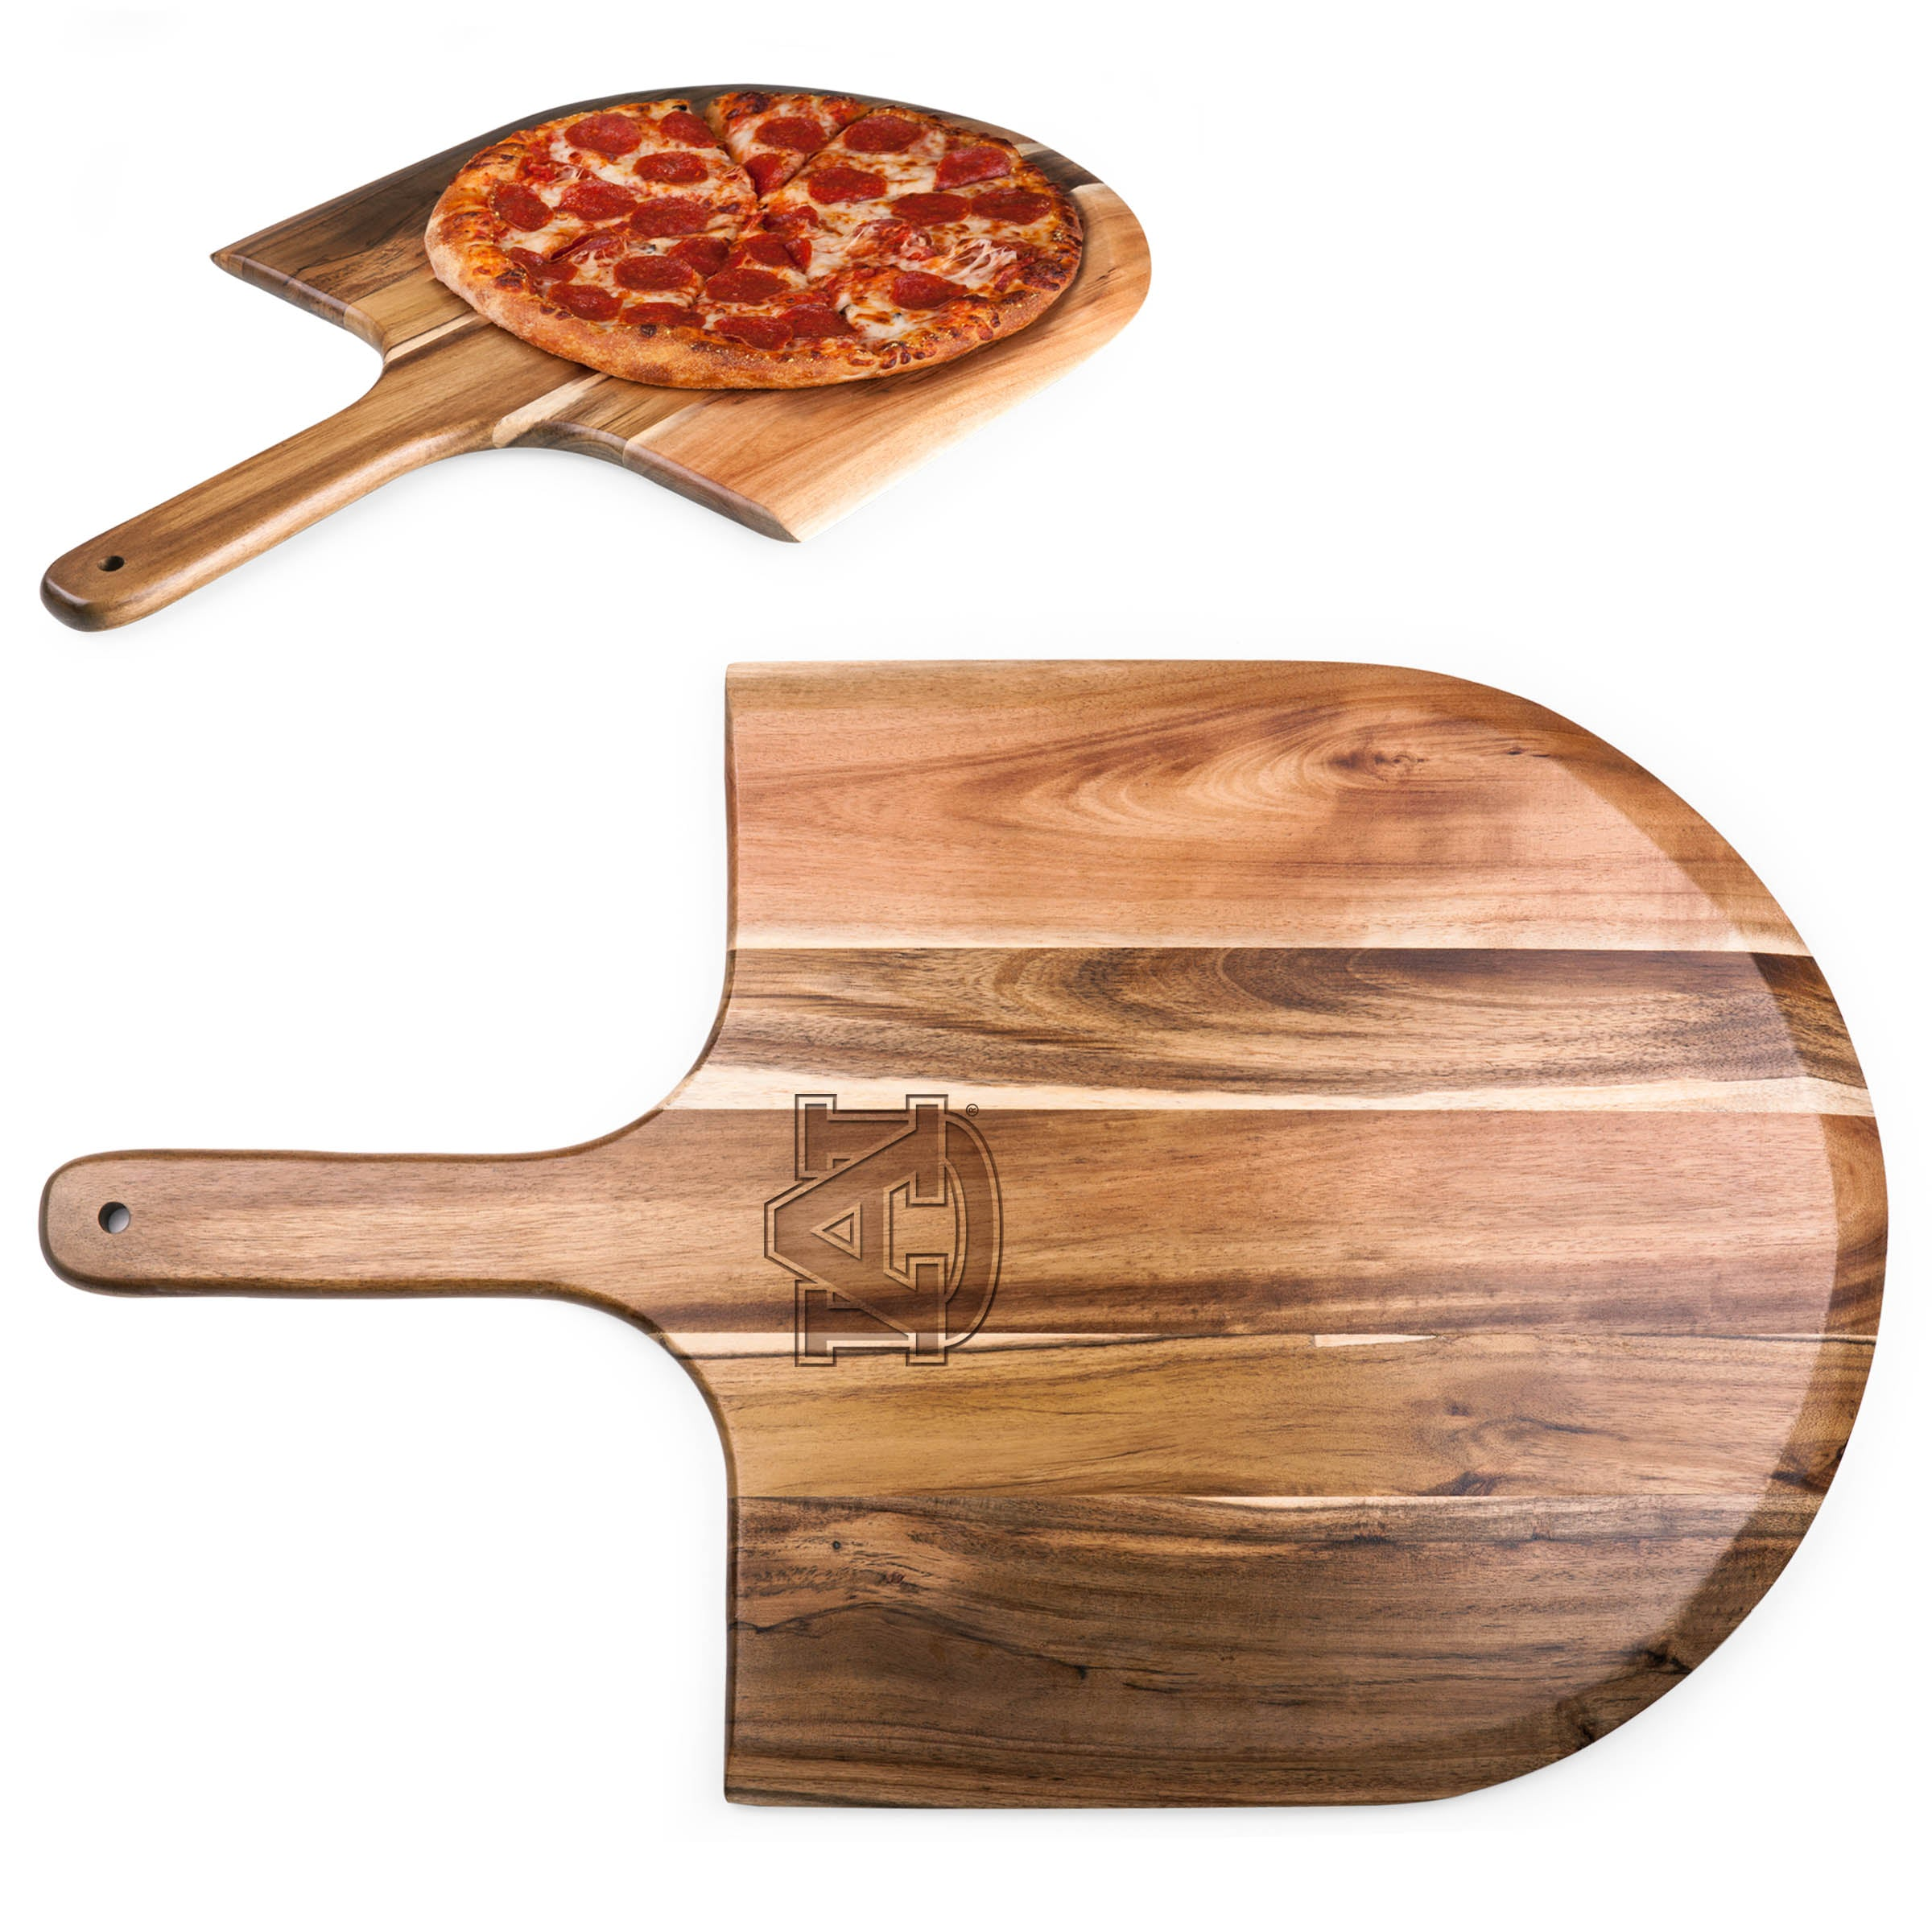 Auburn Tigers 'Acacia Pizza Peel' Serving Paddle-Natural Wood Laser Engraving